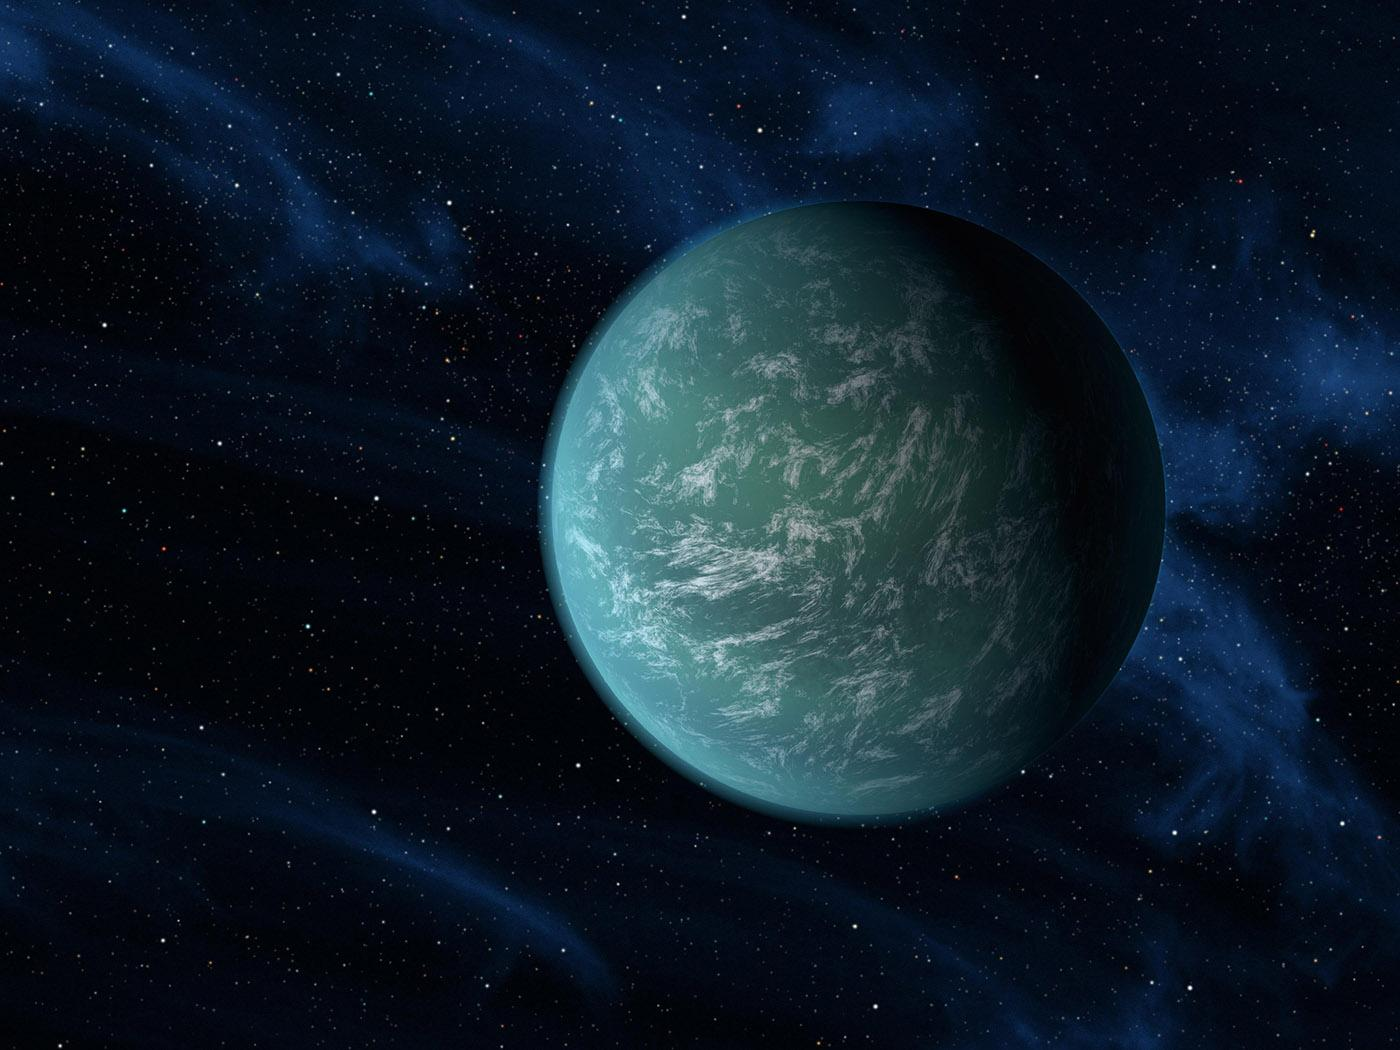 Illustration of the exoplanet Kepler 22-B. Credit: NASA, AMES and JPL-Caltech Image credit: None